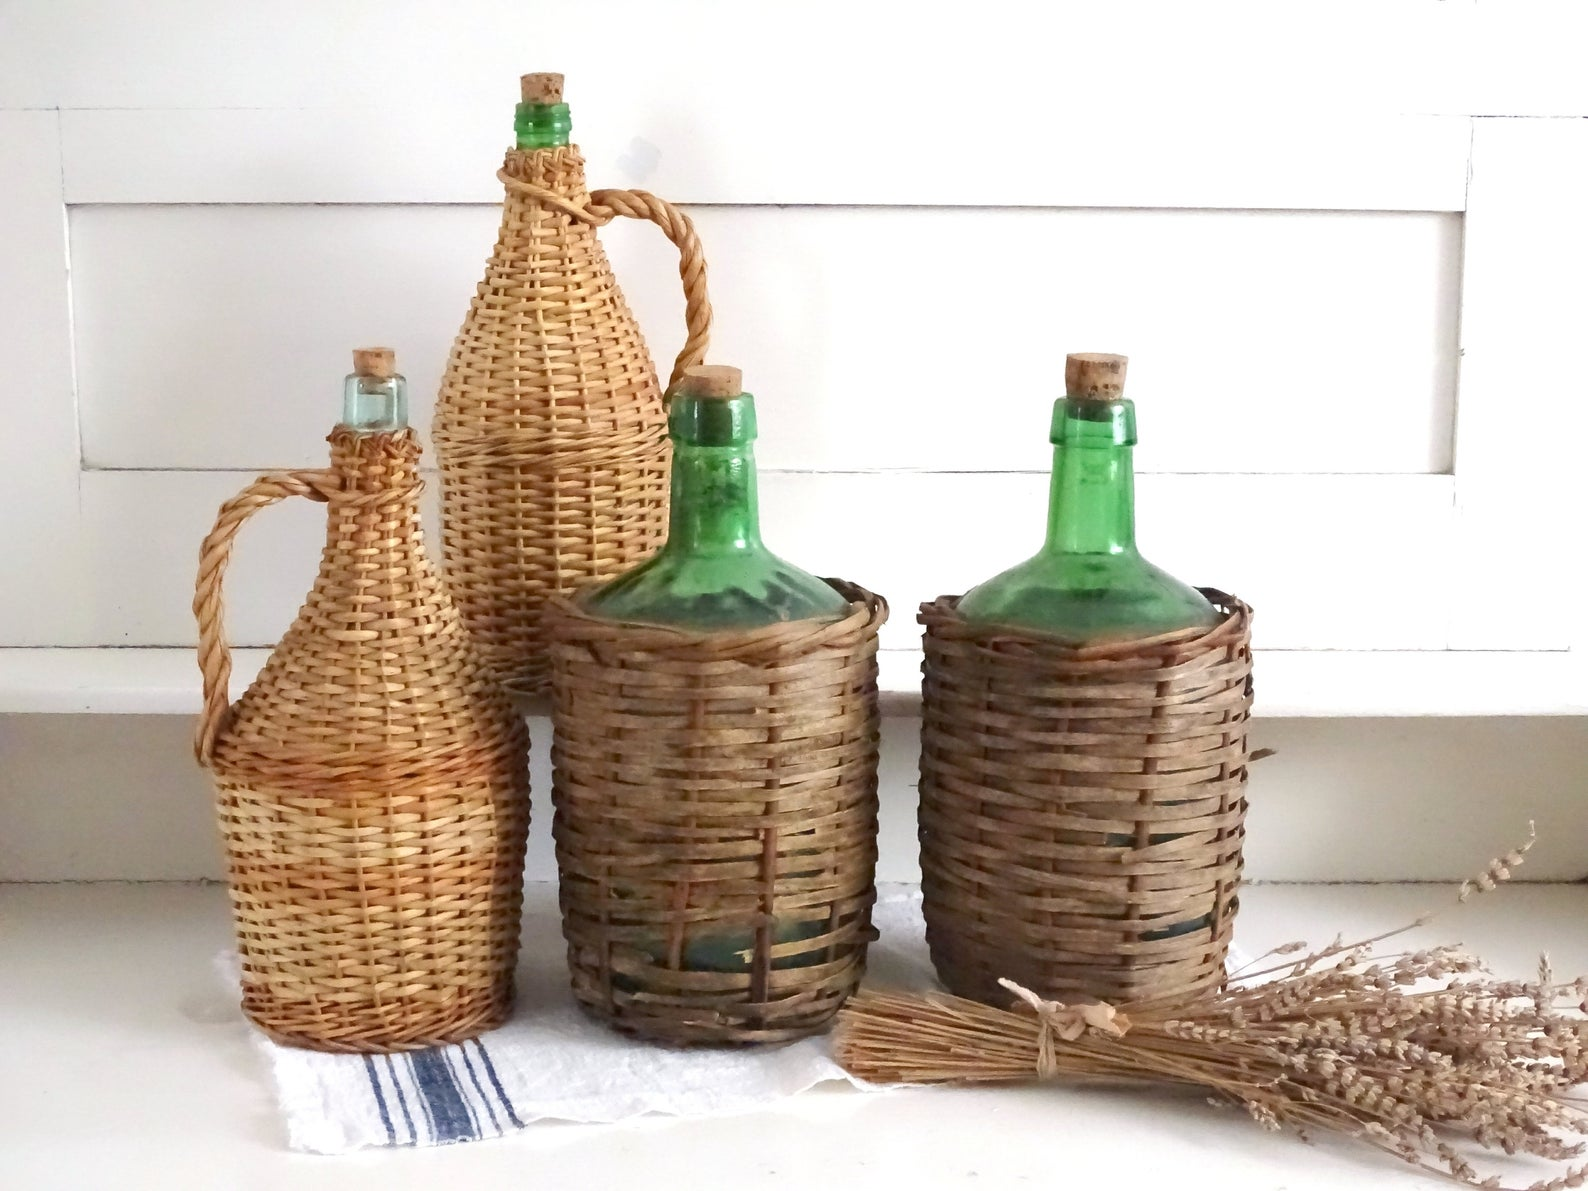 A collection of wicker wrapped demijohns